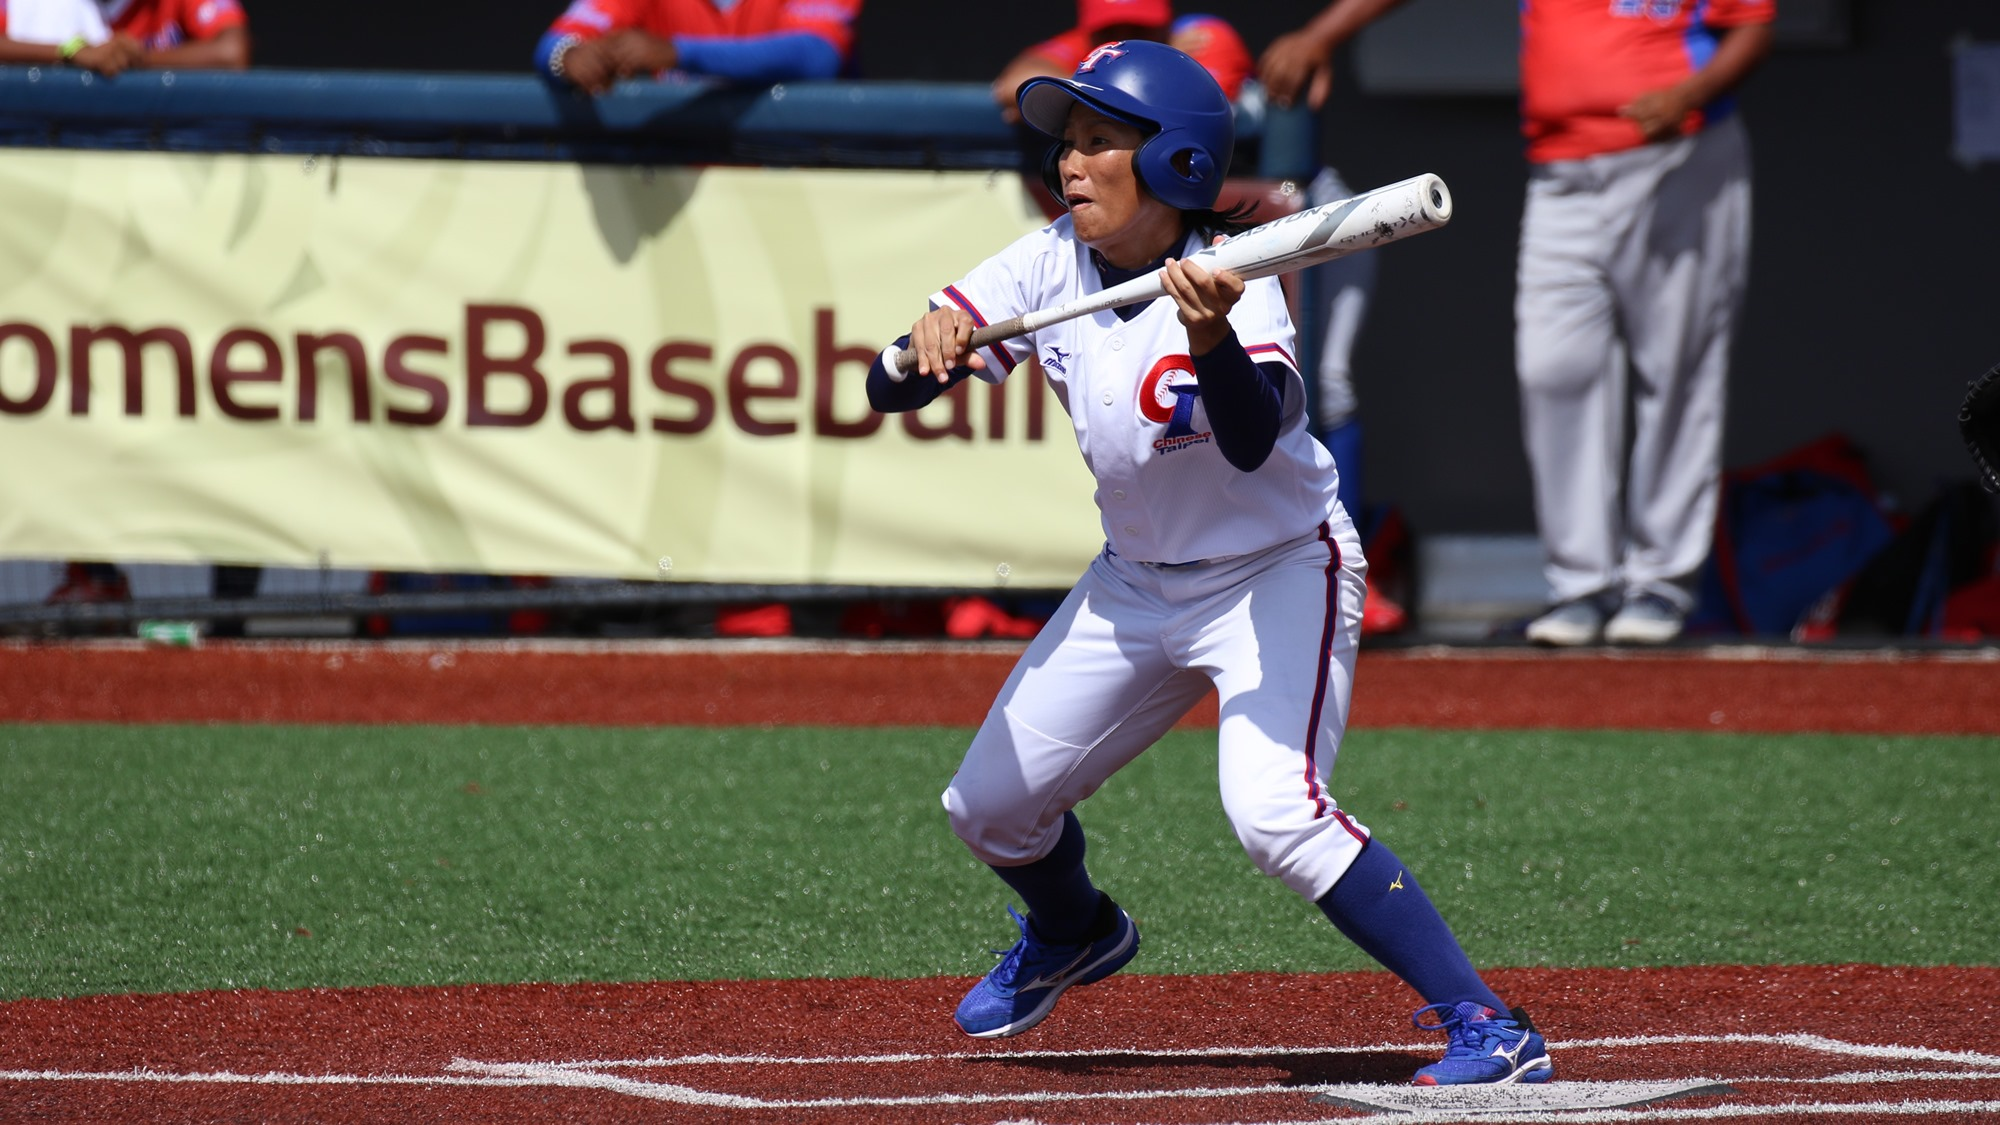 A bunt by Shu Shi Mei moved the winning run to third in the bottom of the eighth for Chinese Taipei